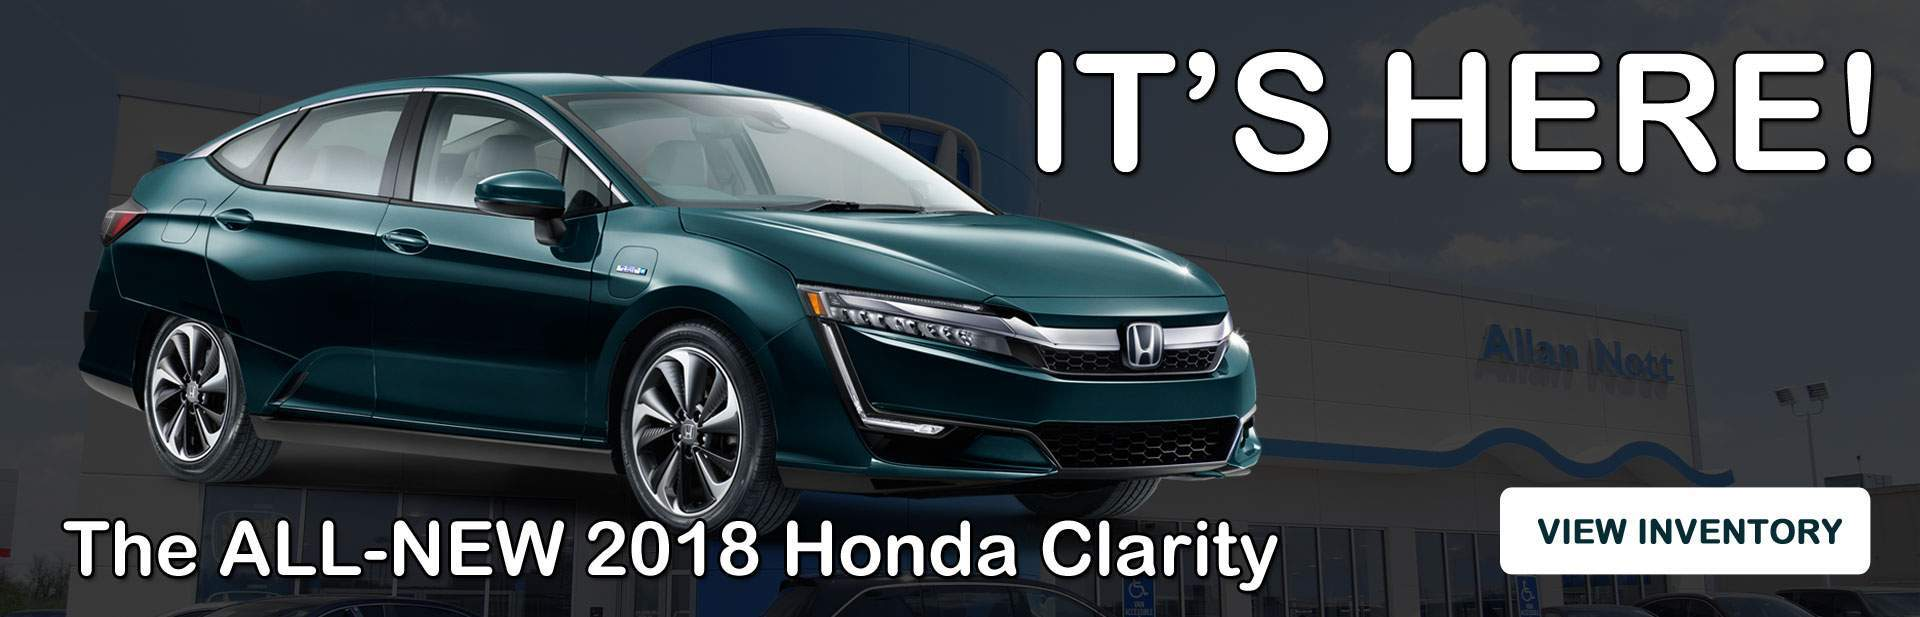 The ALL-NEW 2018 Honda Clarity is here!